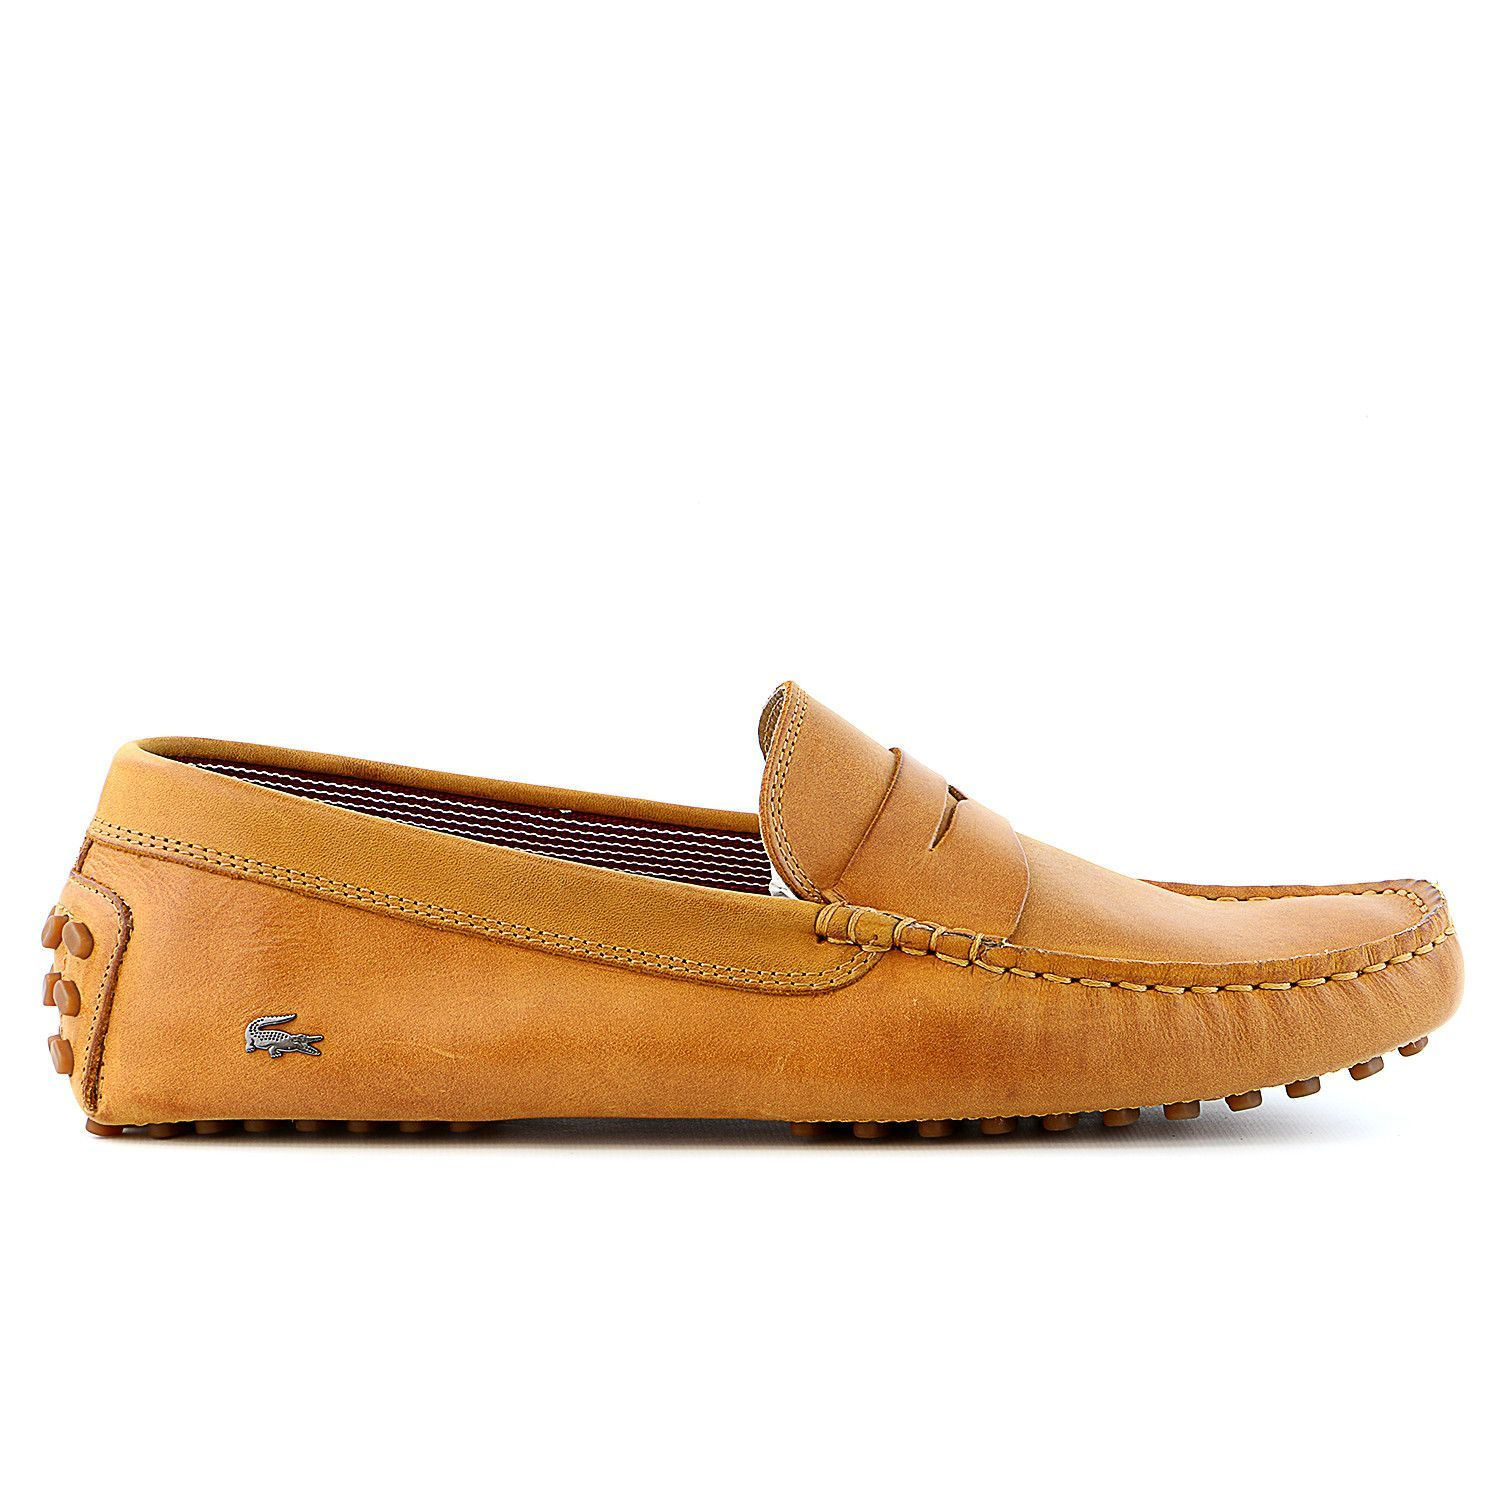 95afe9935 Lacoste Concours 16 SRM Leather Moccasin Loafer Shoe - Mens